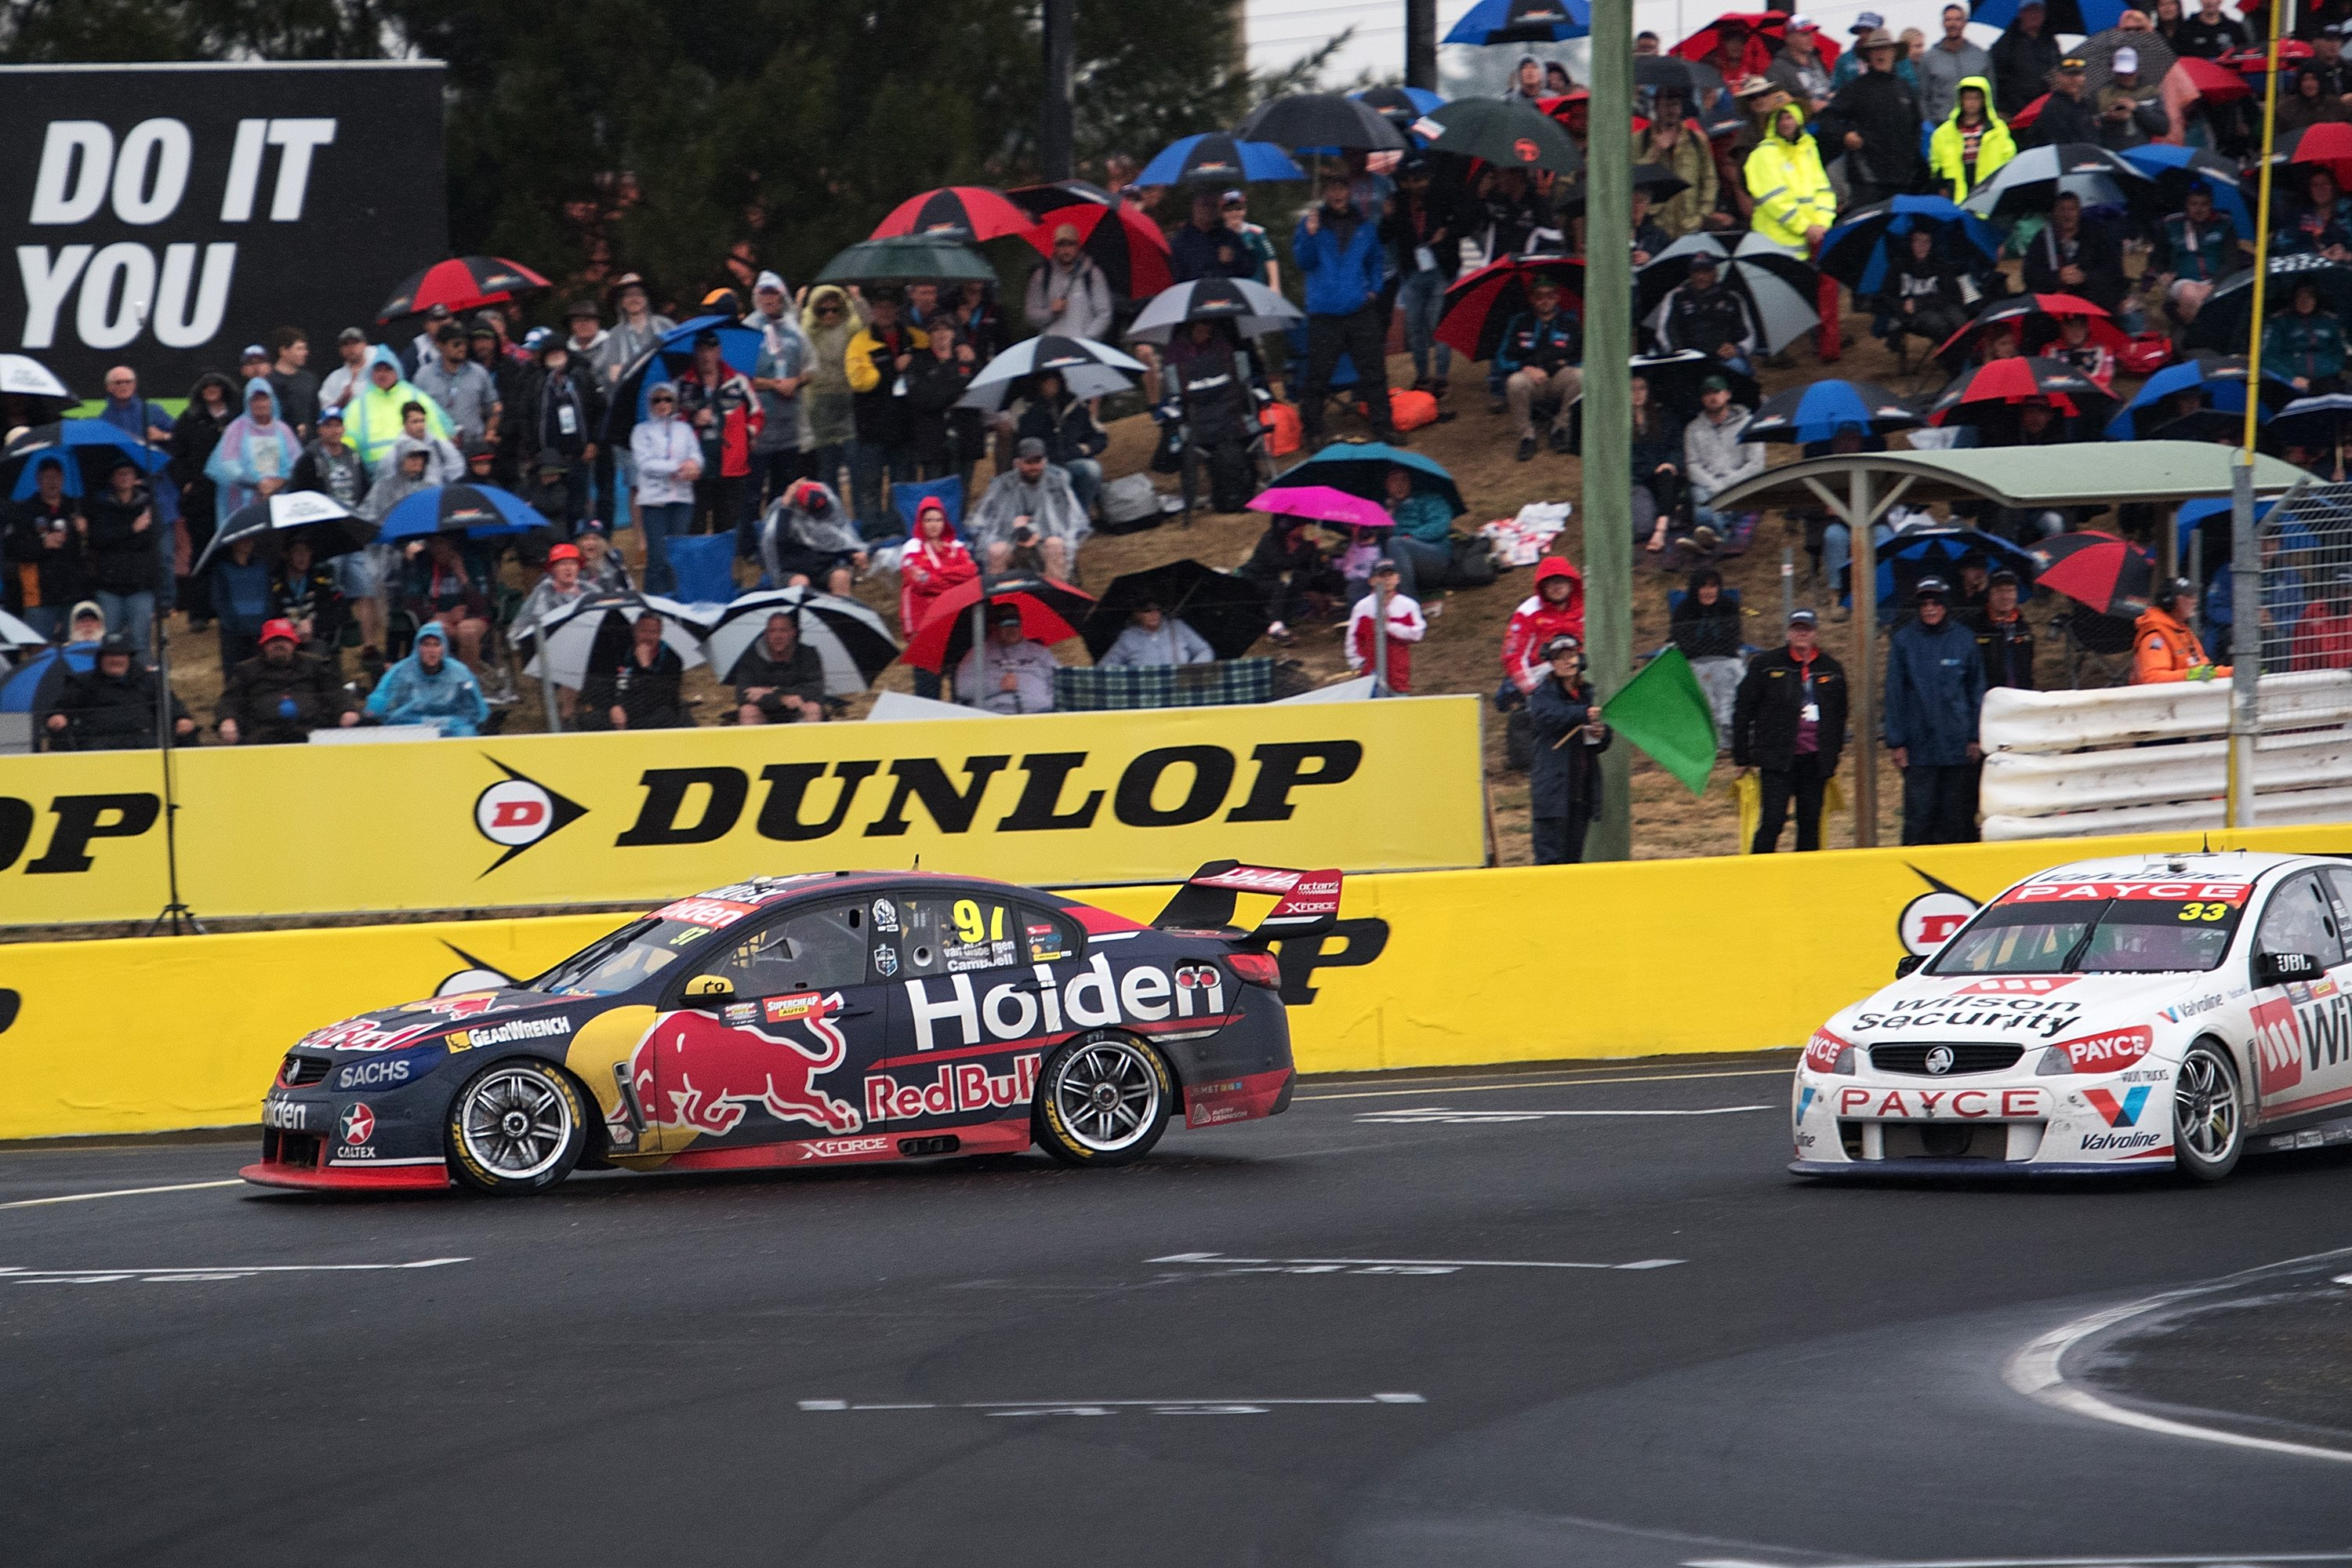 Exit road at the start of the straight at the 2017 Bathurst 1000